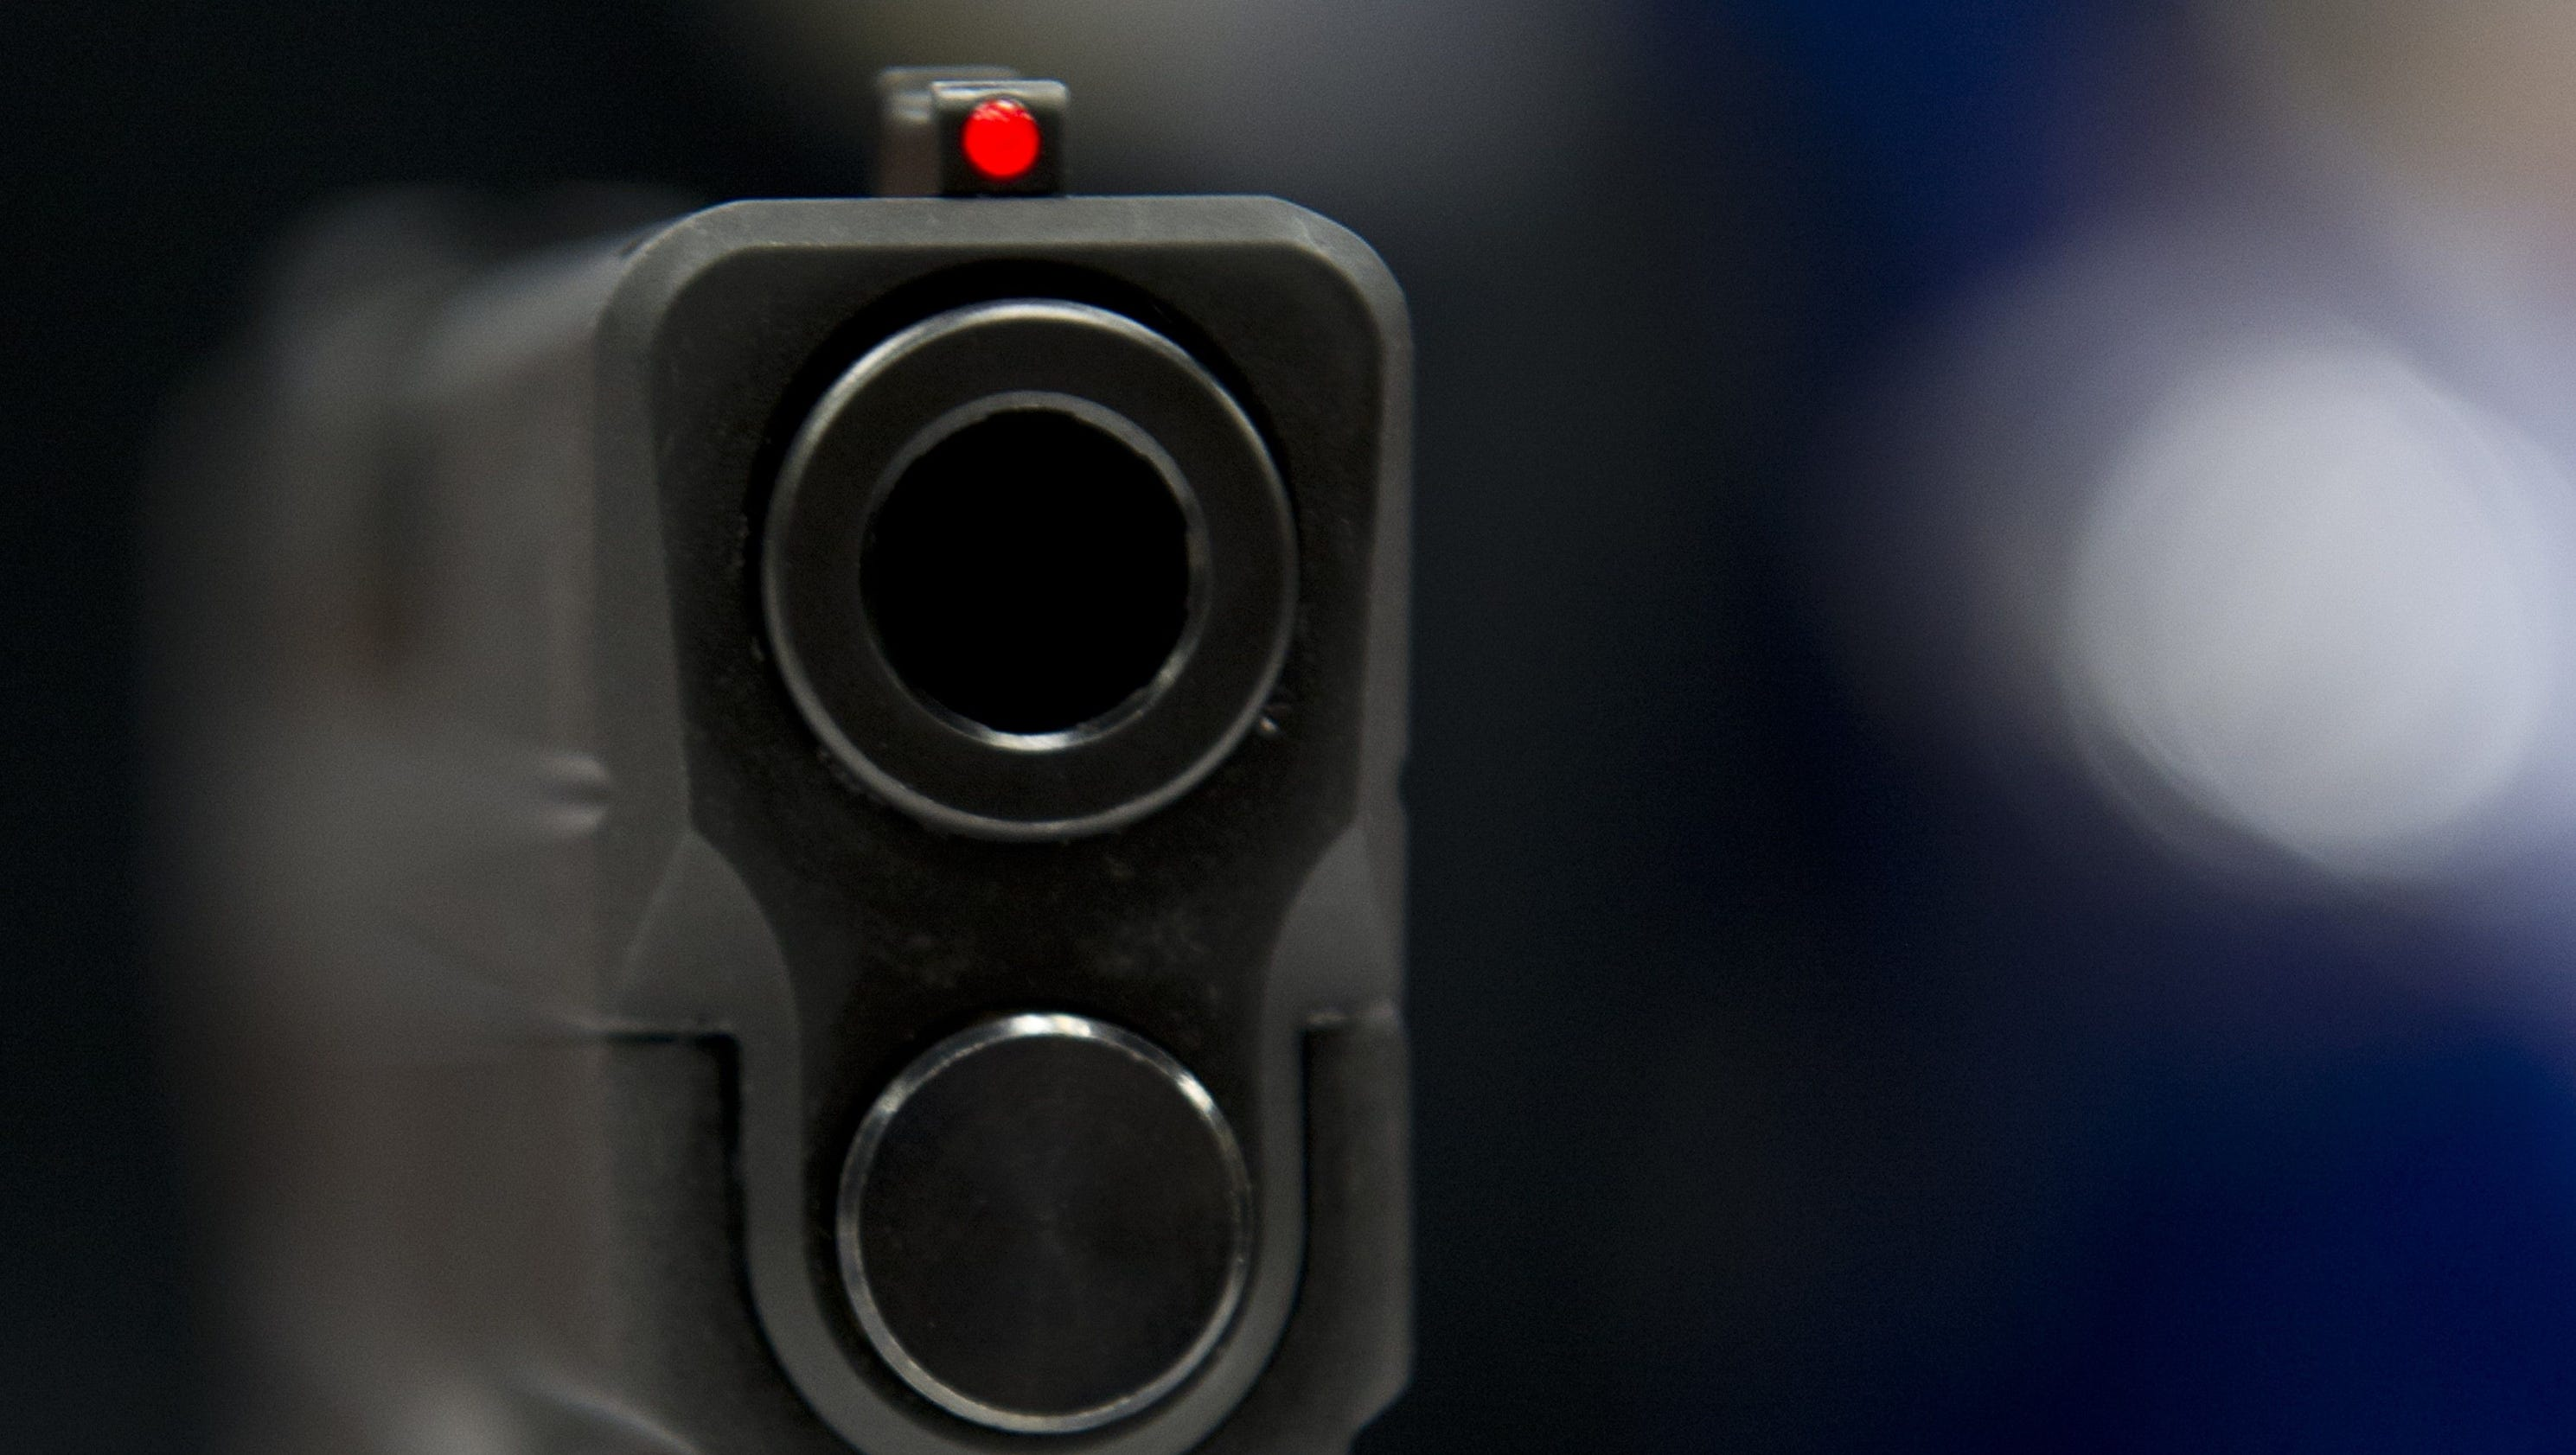 Mississippi boy, 9, shoots sister, 13, over video game controller, police say